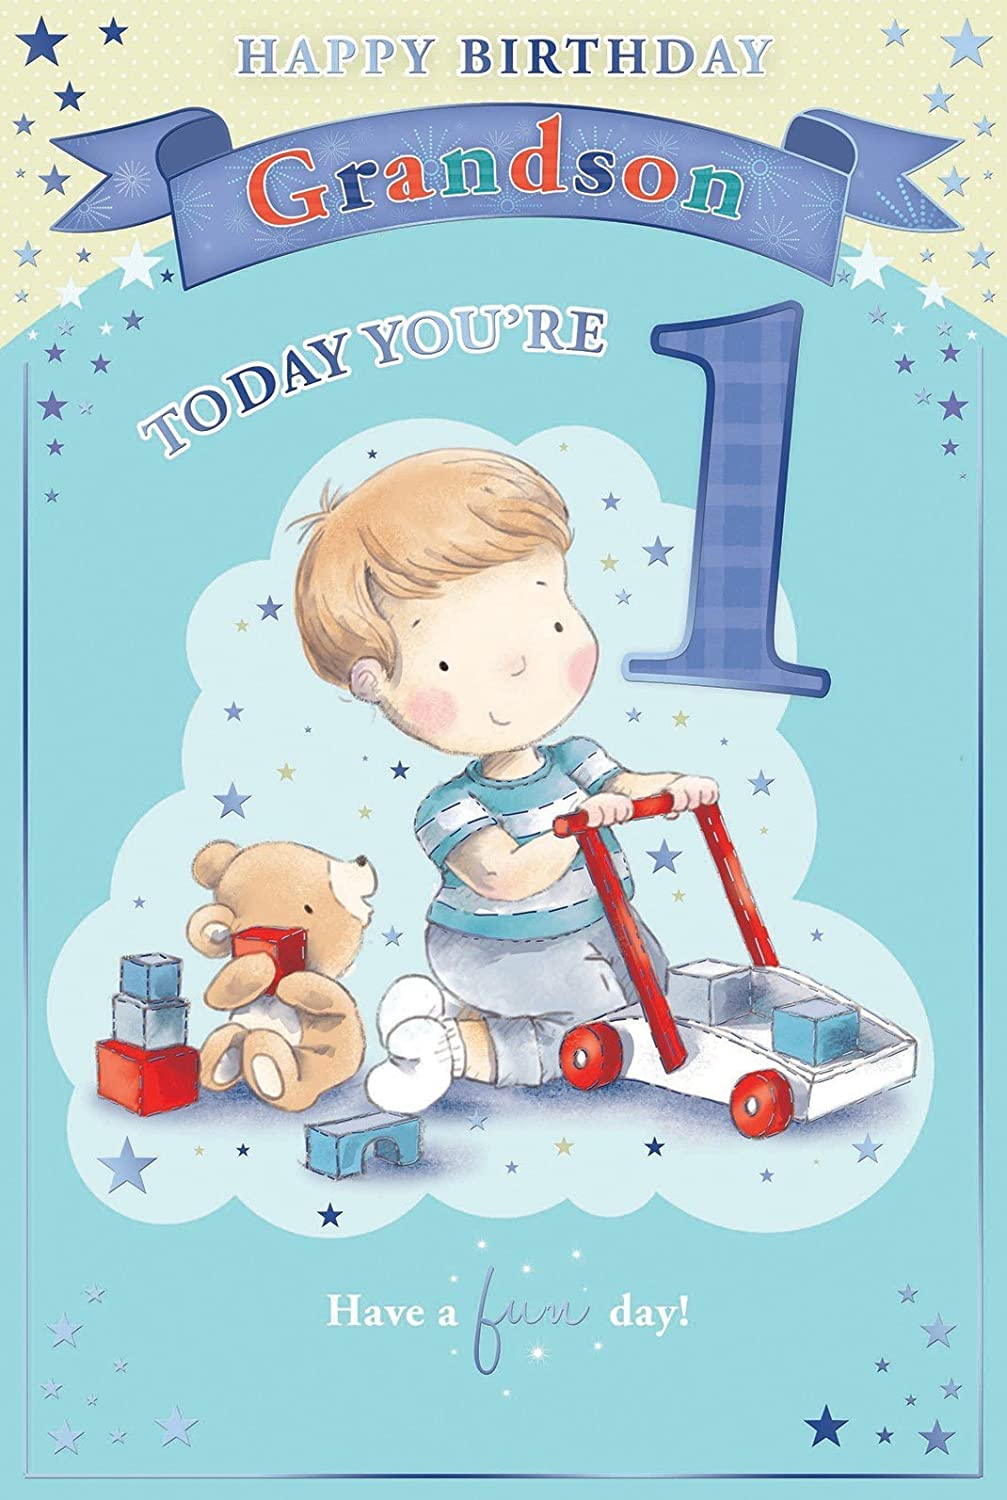 Grandsons 1st birthday card 1 today little boy bear playing grandsons 1st birthday card 1 today little boy bear playing with toys 9 x 6 amazon office products bookmarktalkfo Image collections